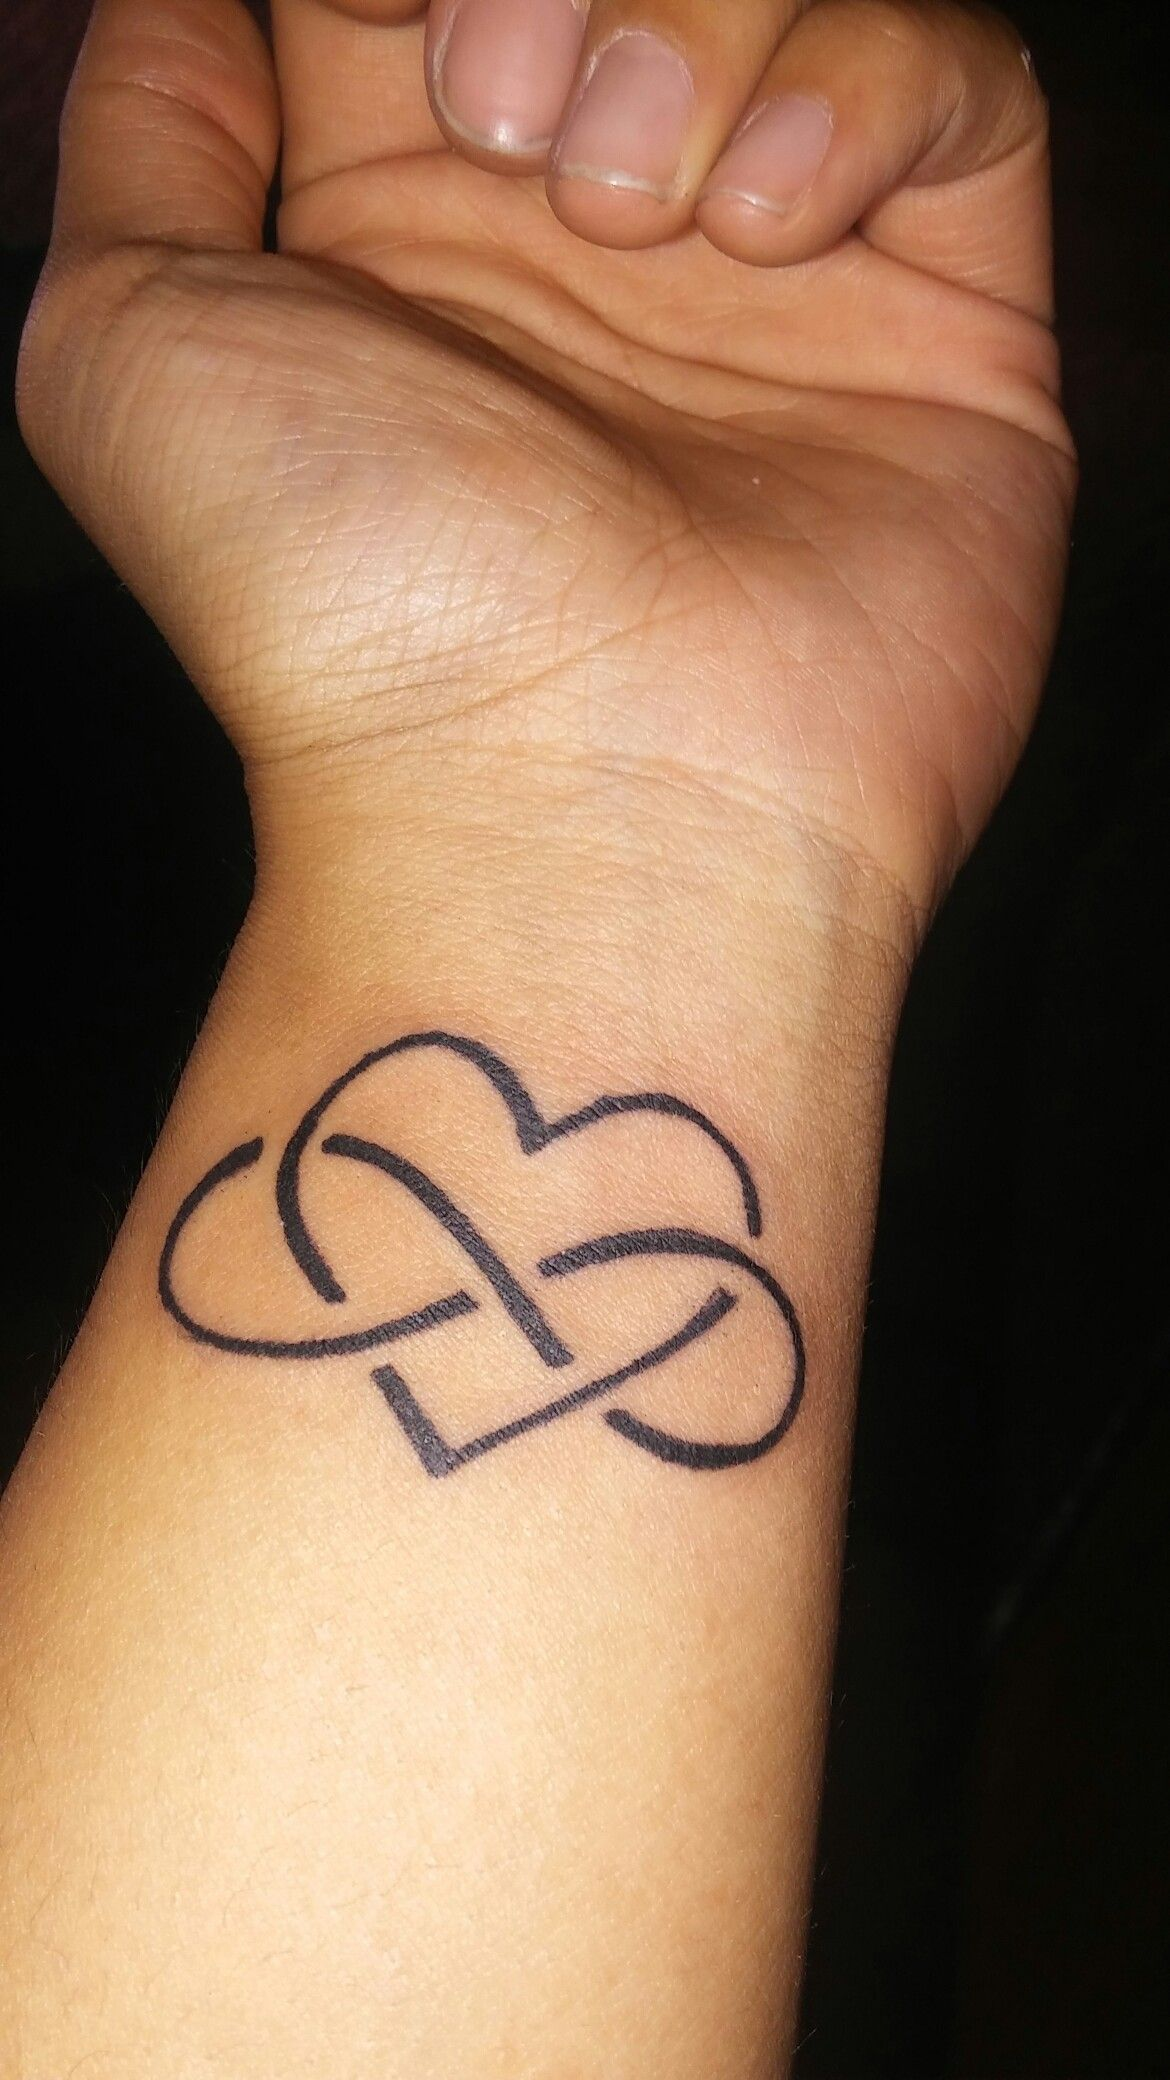 Tattoo ideas for the wrist - Find This Pin And More On Tattoo Ideas